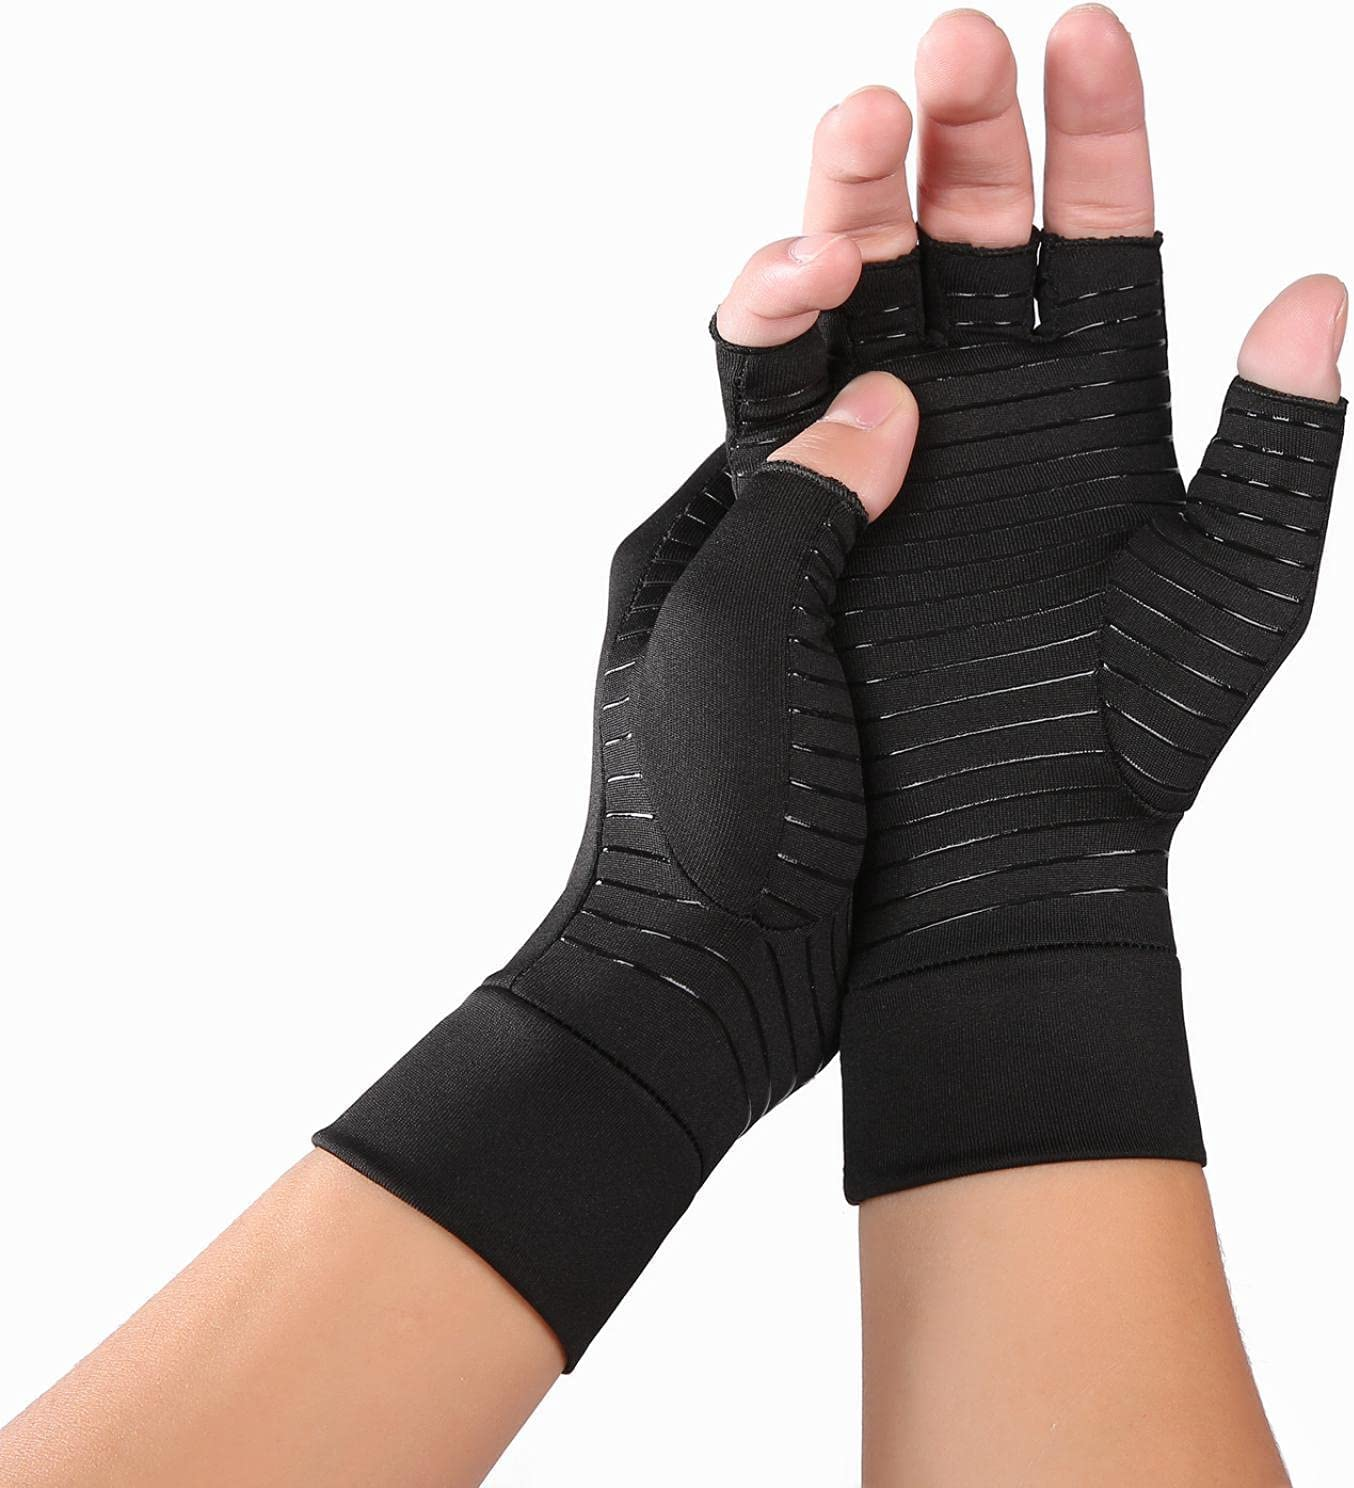 Safety and trust Men Tucson Mall Women Arthritis Compression Gloves Sports